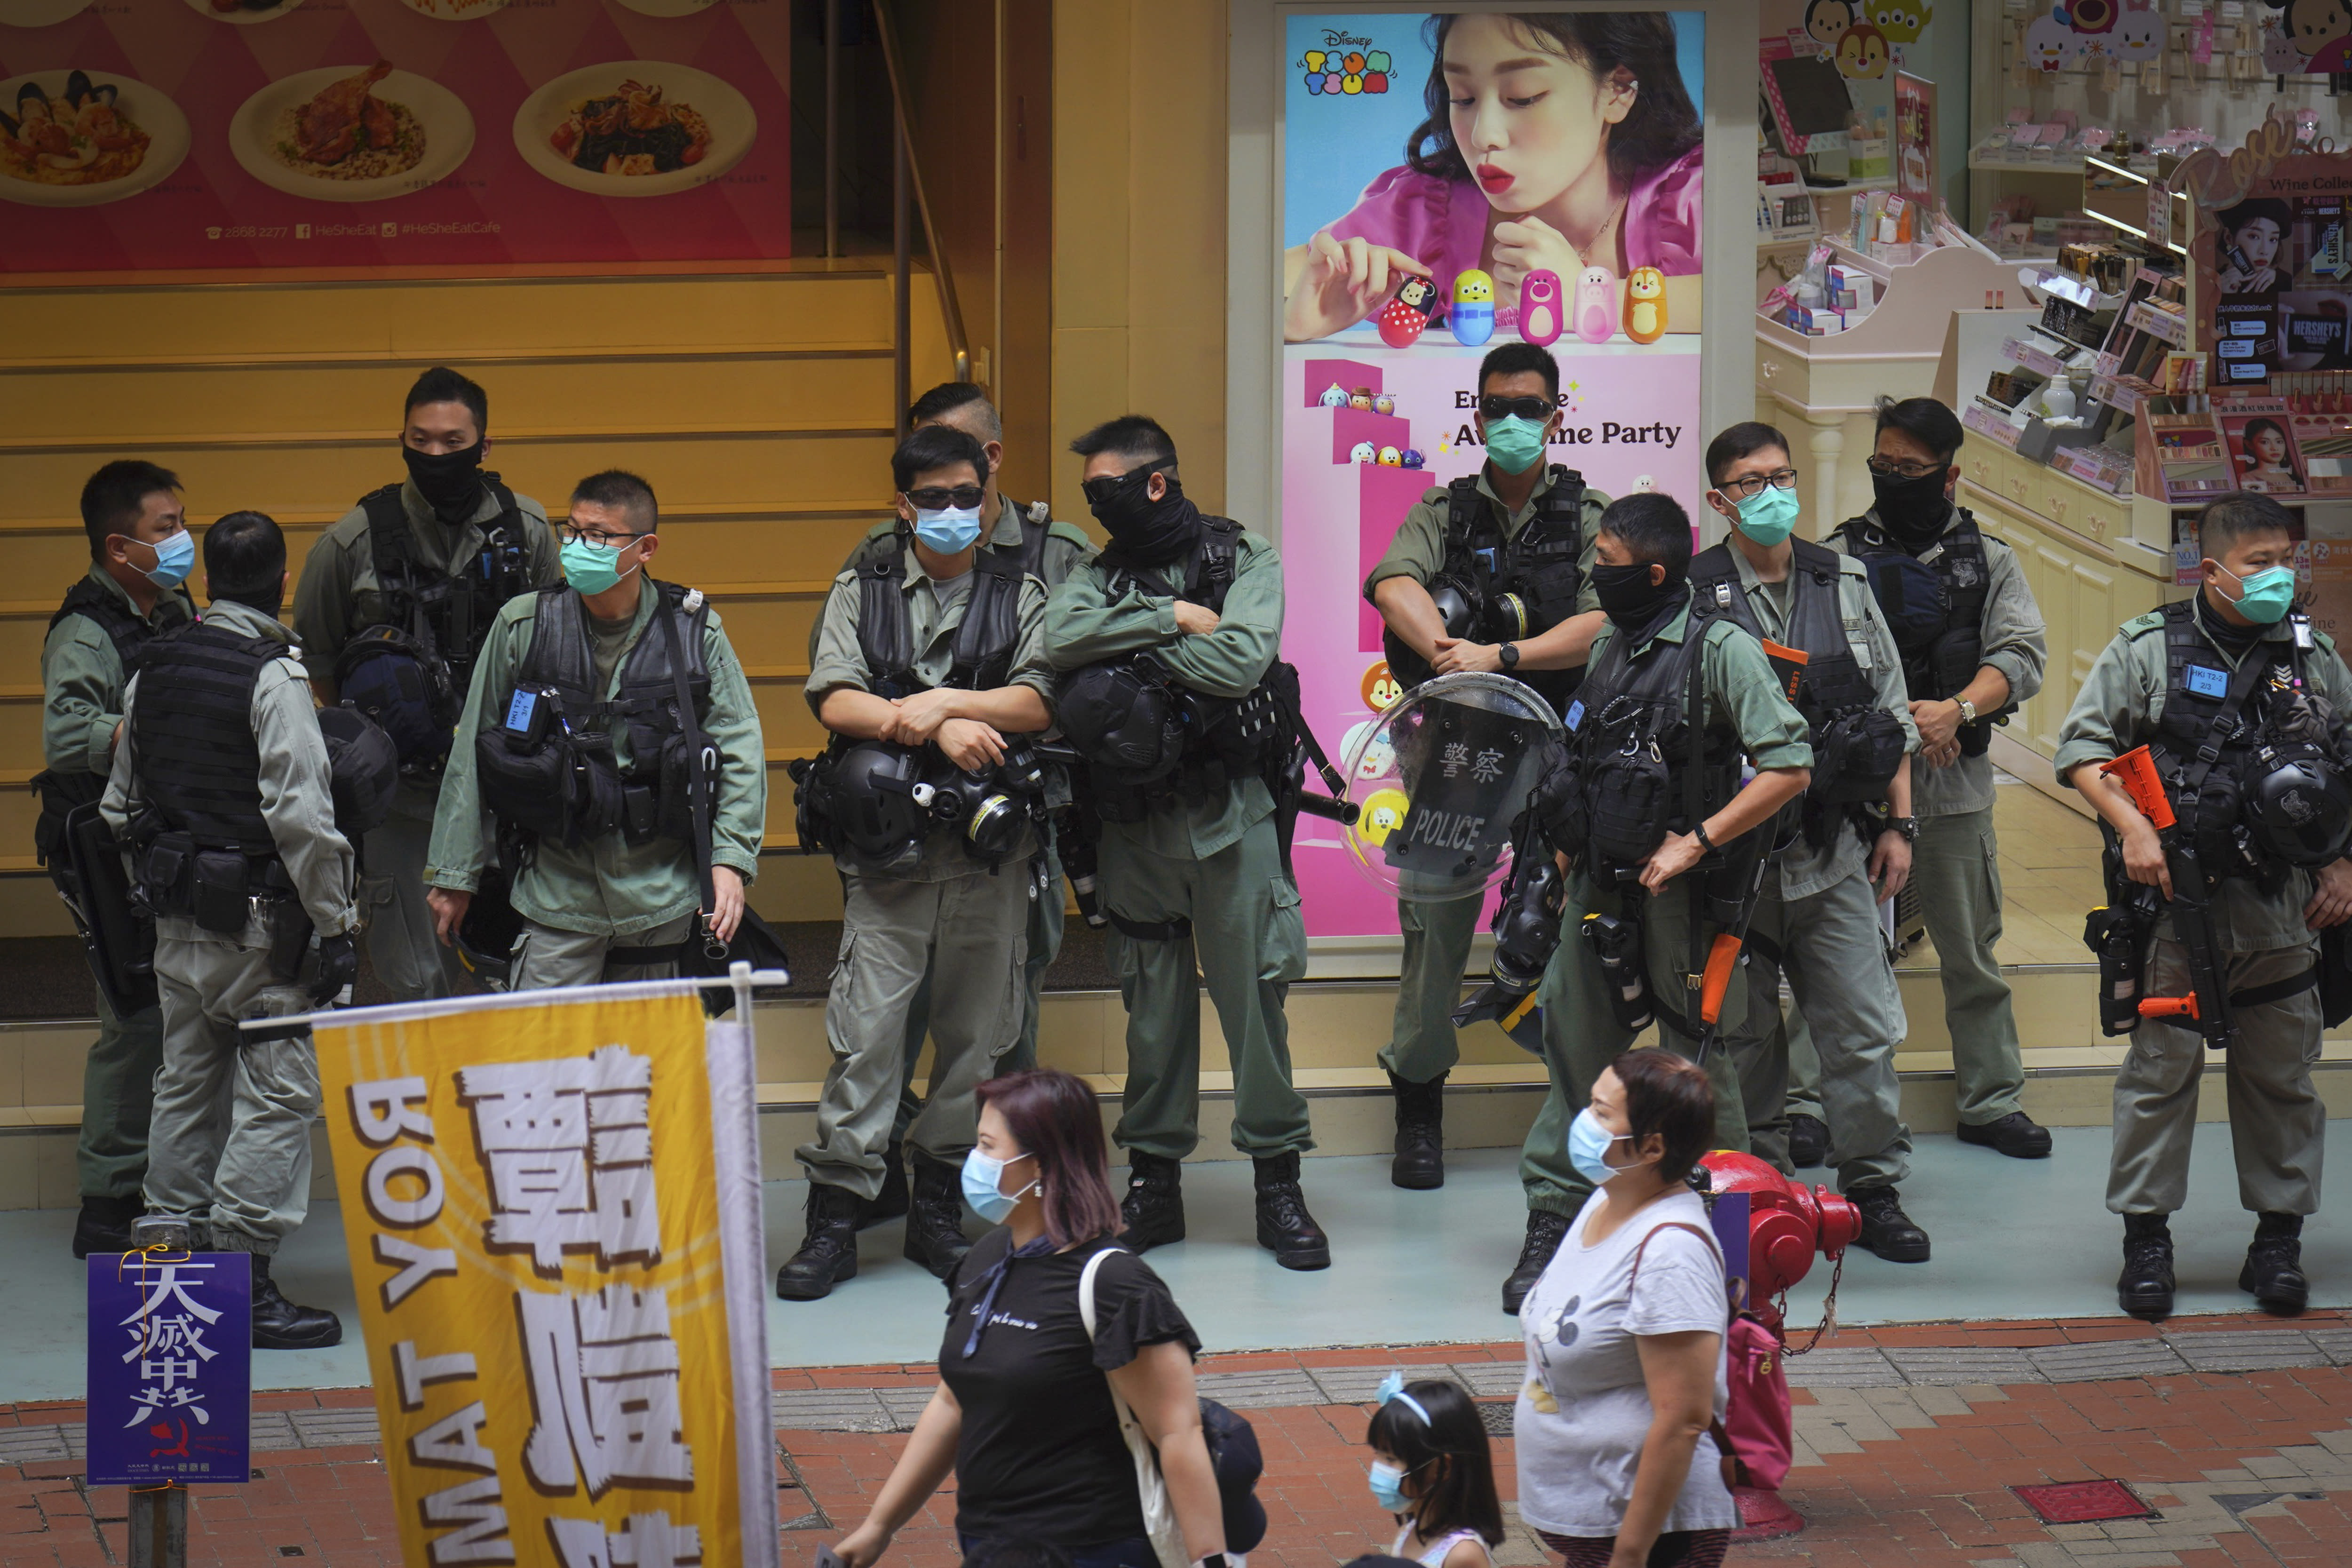 Police stand guard in Causeway Bay before the annual handover march in Hong Kong, Wednesday, July. 1, 2020. Hong Kong marked the 23rd anniversary of its handover to China in 1997, and just one day after China enacted a national security law that cracks down on protests in the territory. (AP Photo/Vincent Yu)